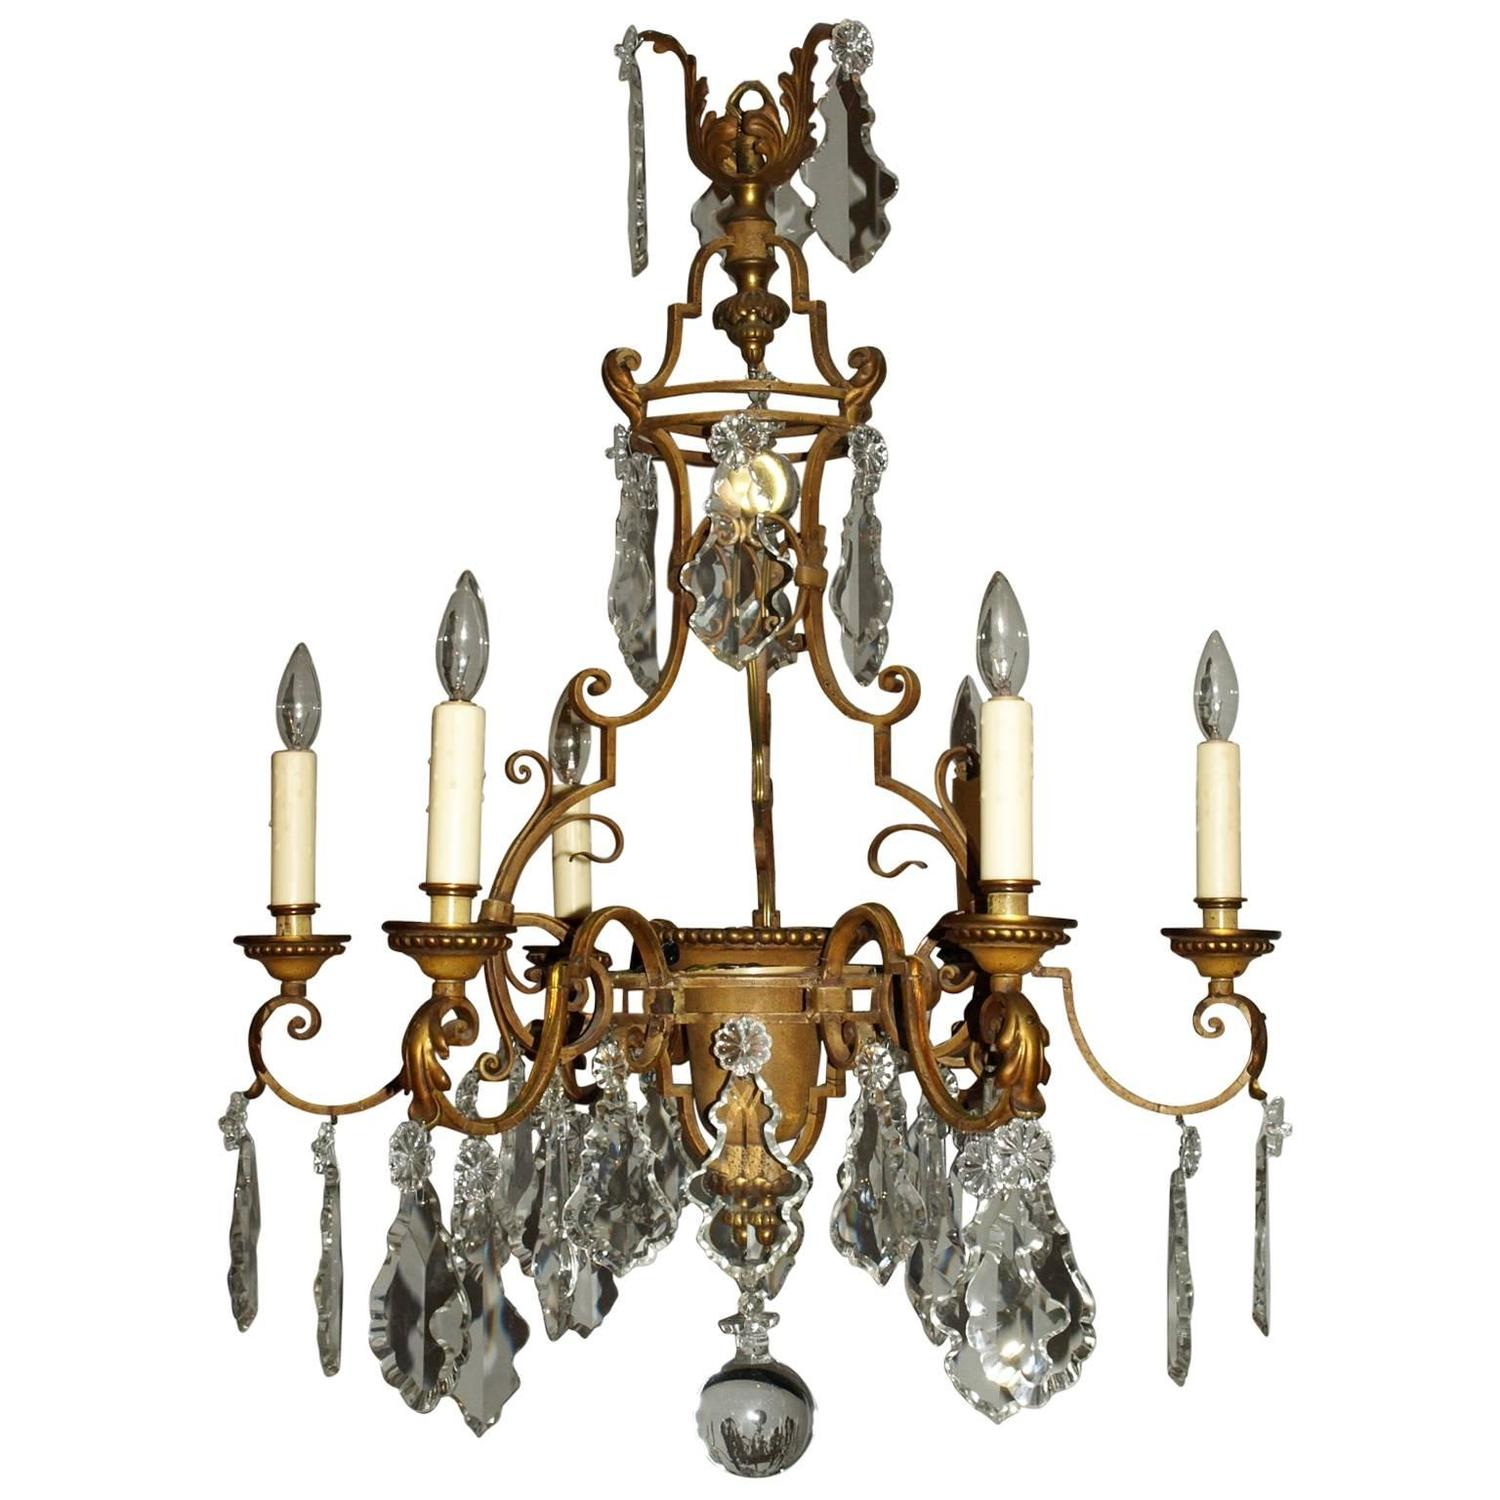 Antique Chandelier Gilt Iron Chandelier with Crystal For